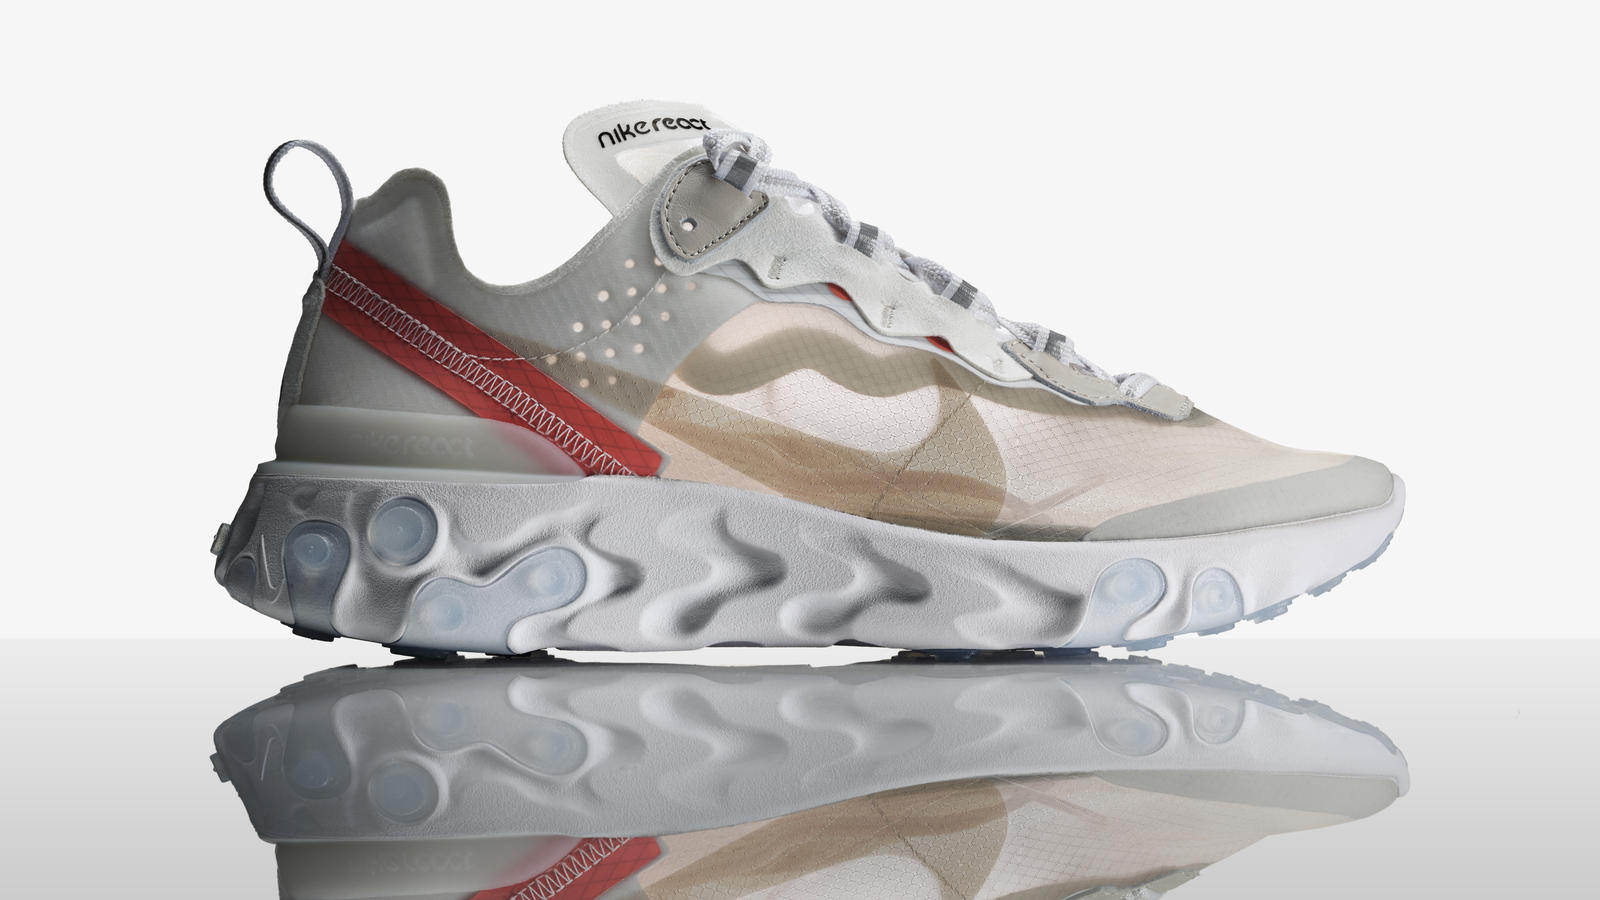 Rudimentary Process, Sophisticated Result: The Nike React Element 87 3